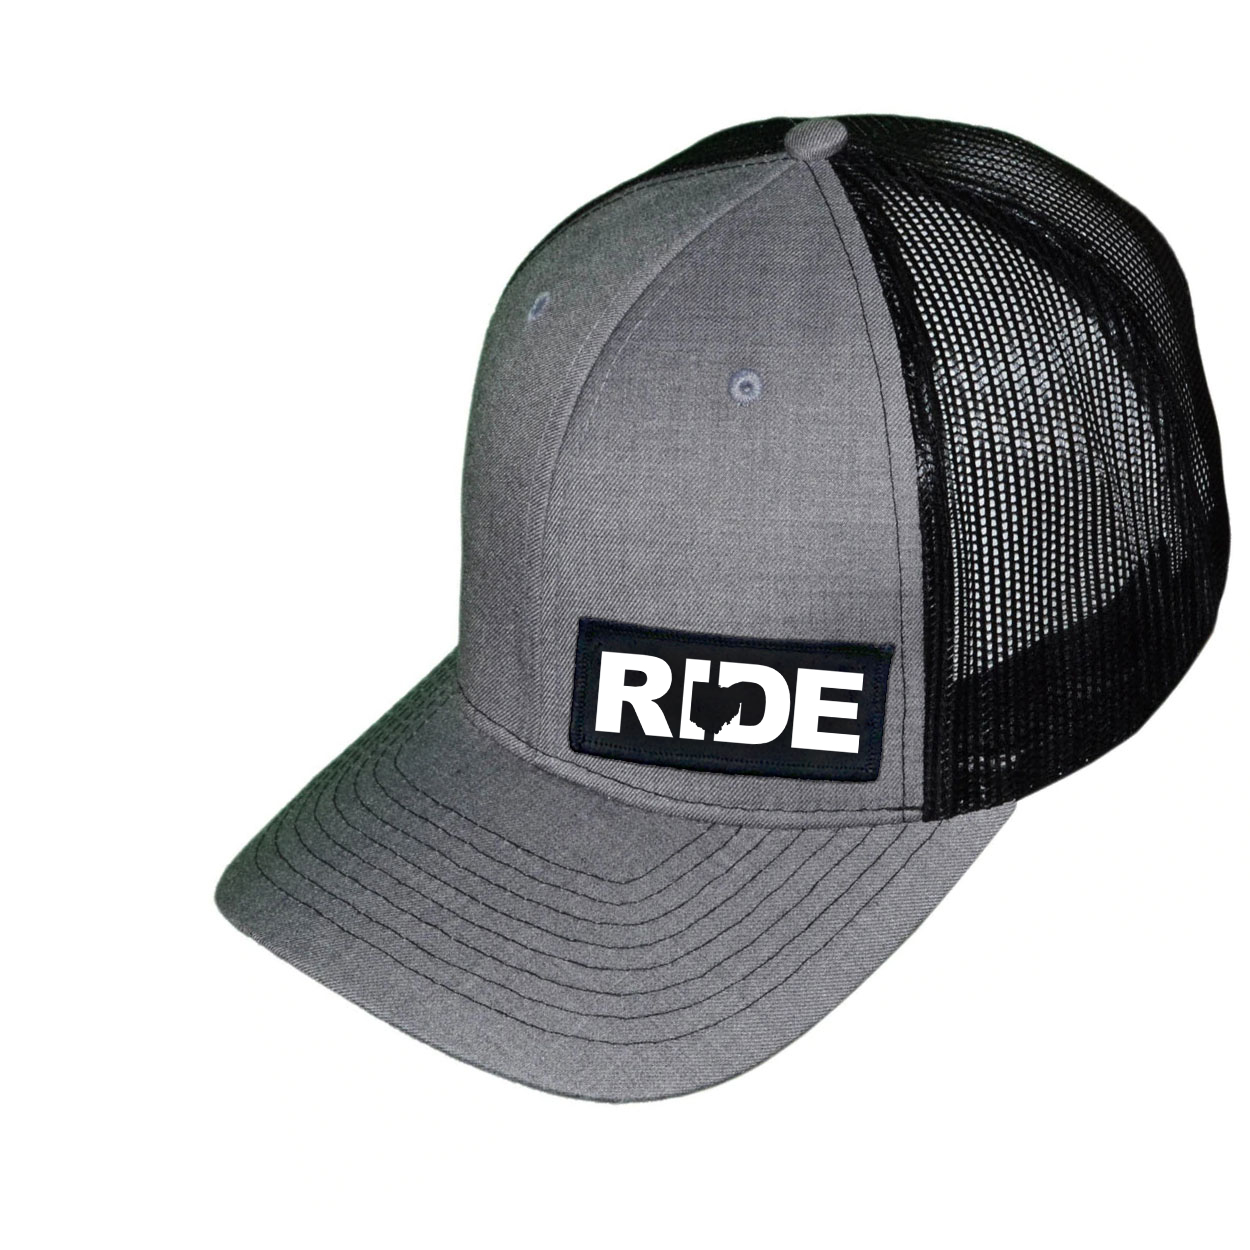 Ride Ohio Night Out Woven Patch Snapback Trucker Hat Heather Gray/Black (White Logo)